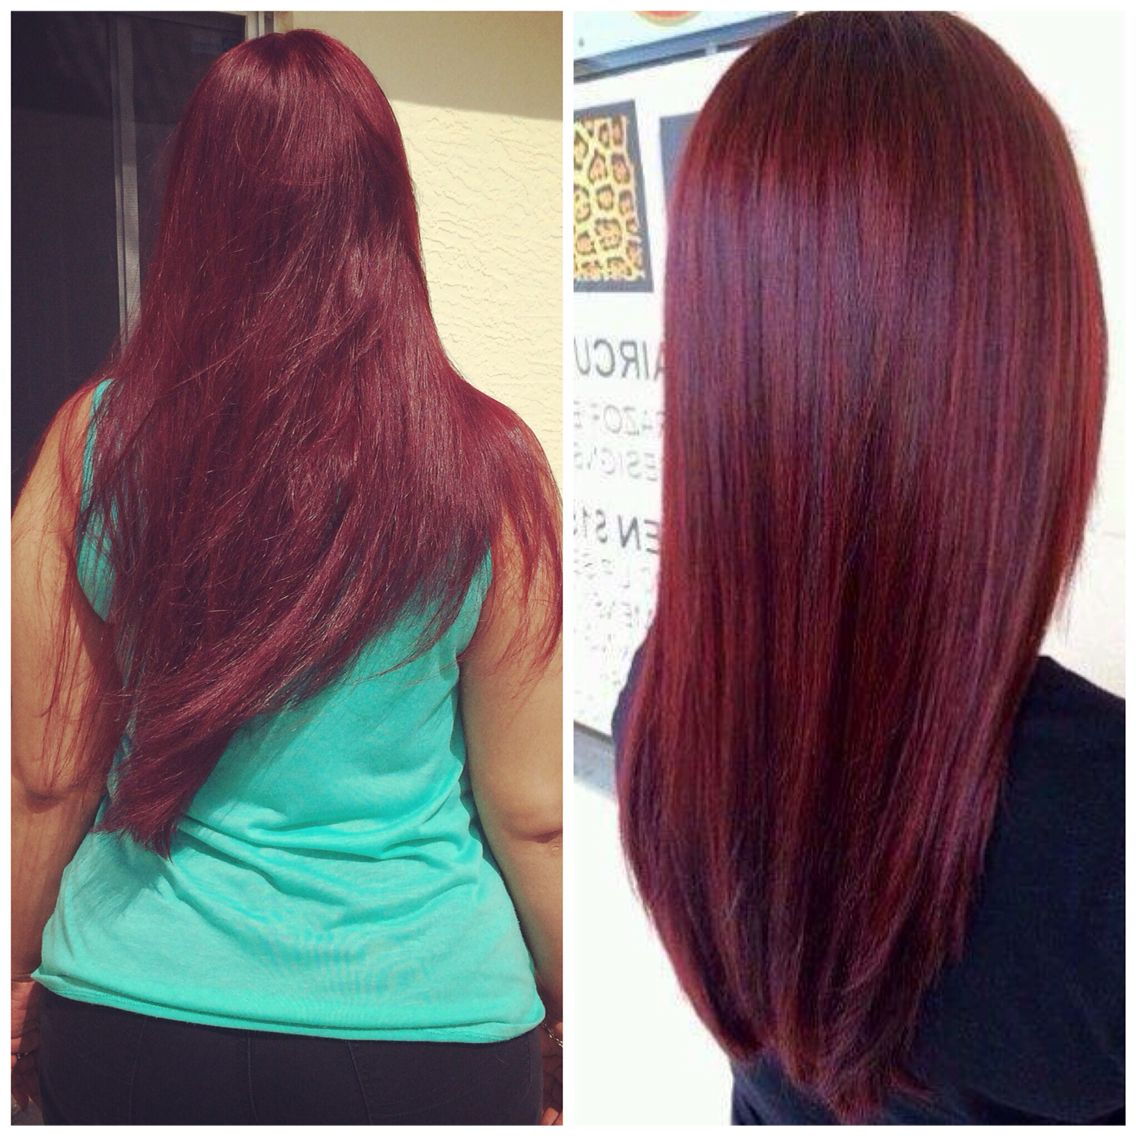 My New Hair Color Day 1 Dyed It Using Loreal Developer 30 2